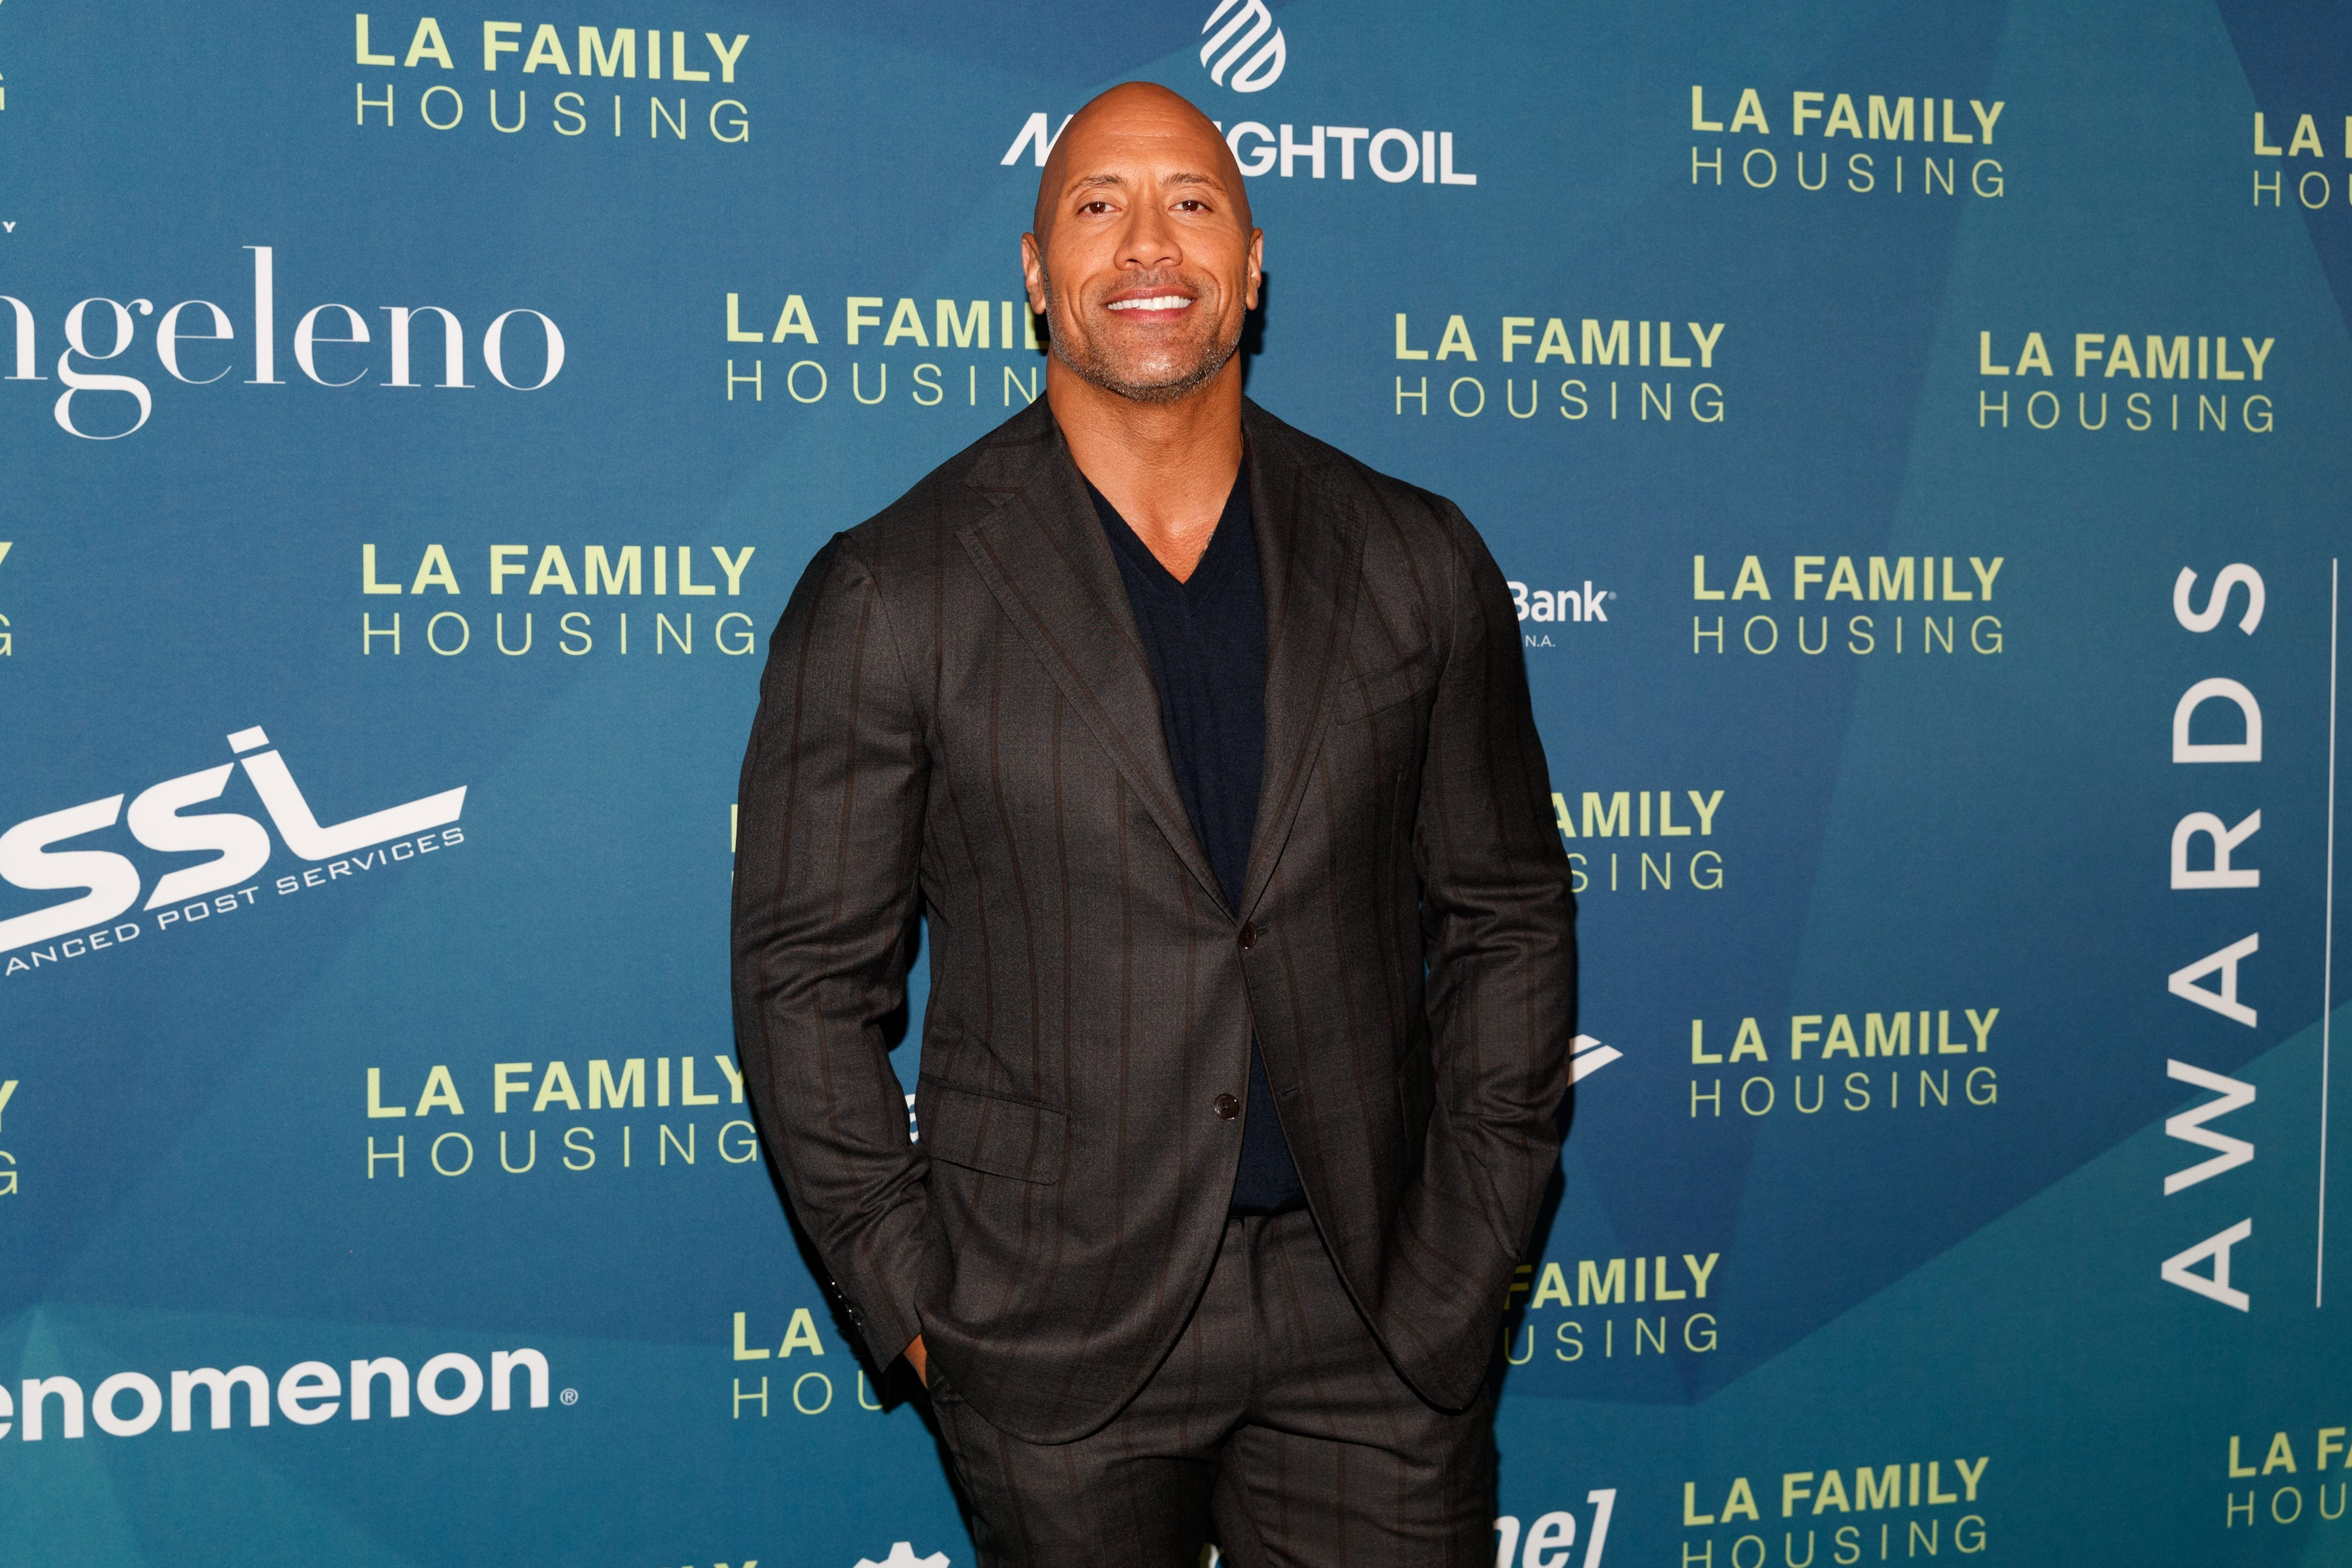 Dwayne Johnson at the LAFH Awards at The Lot in West Hollywood on April 5, 2018 in West Hollywood, California | Photo: Getty Images